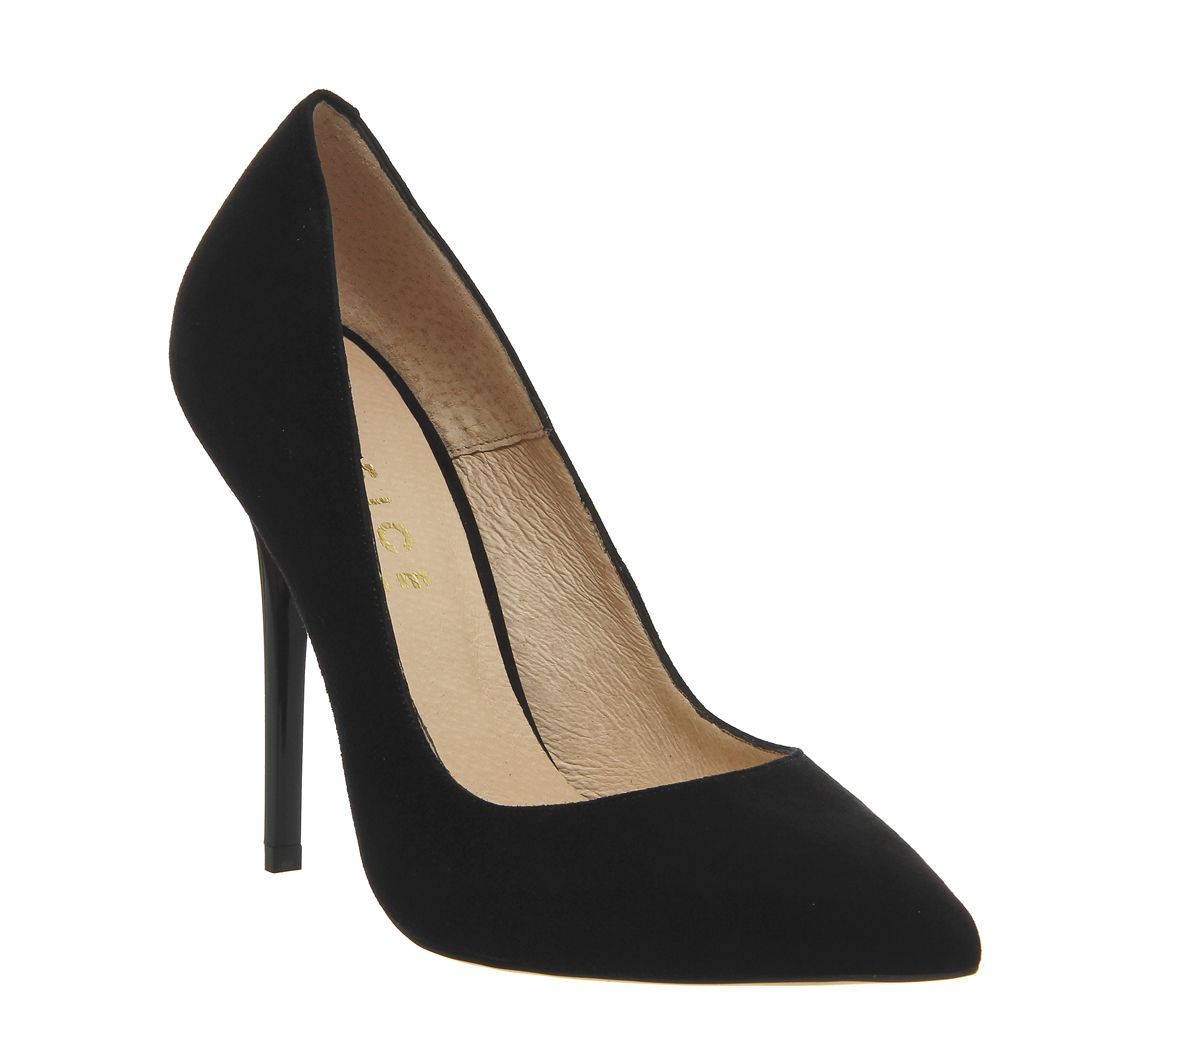 ad451e48d2780 Office On To Point Court Heels Black Suede - High Heels